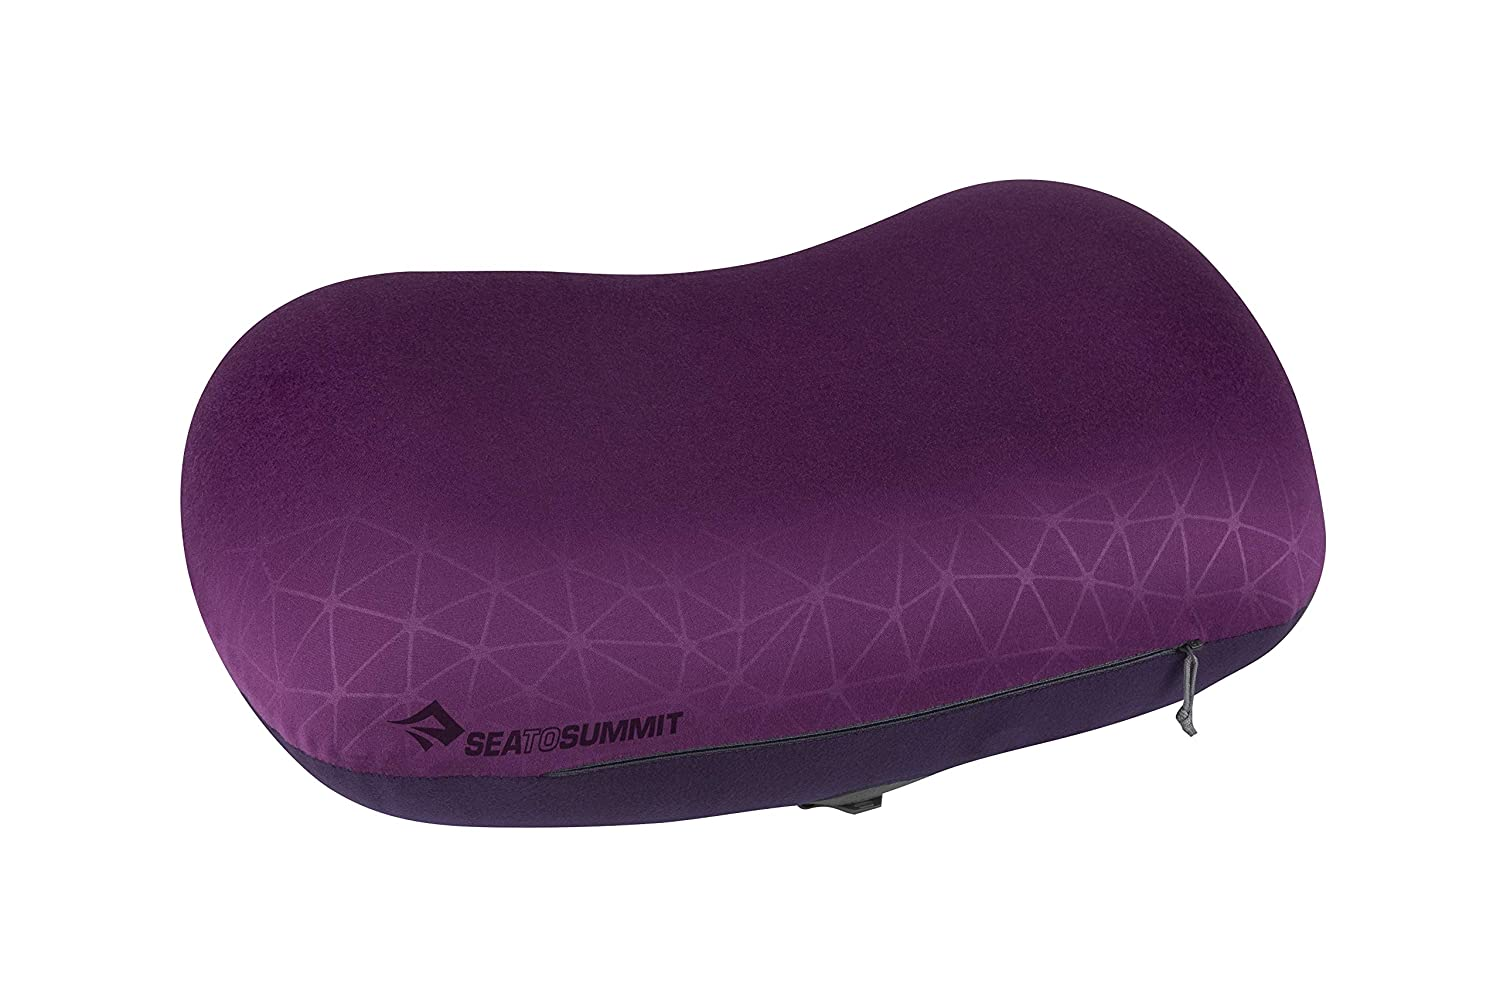 Amazon.com: Sea to Summit Aeros - Funda de almohada, L ...